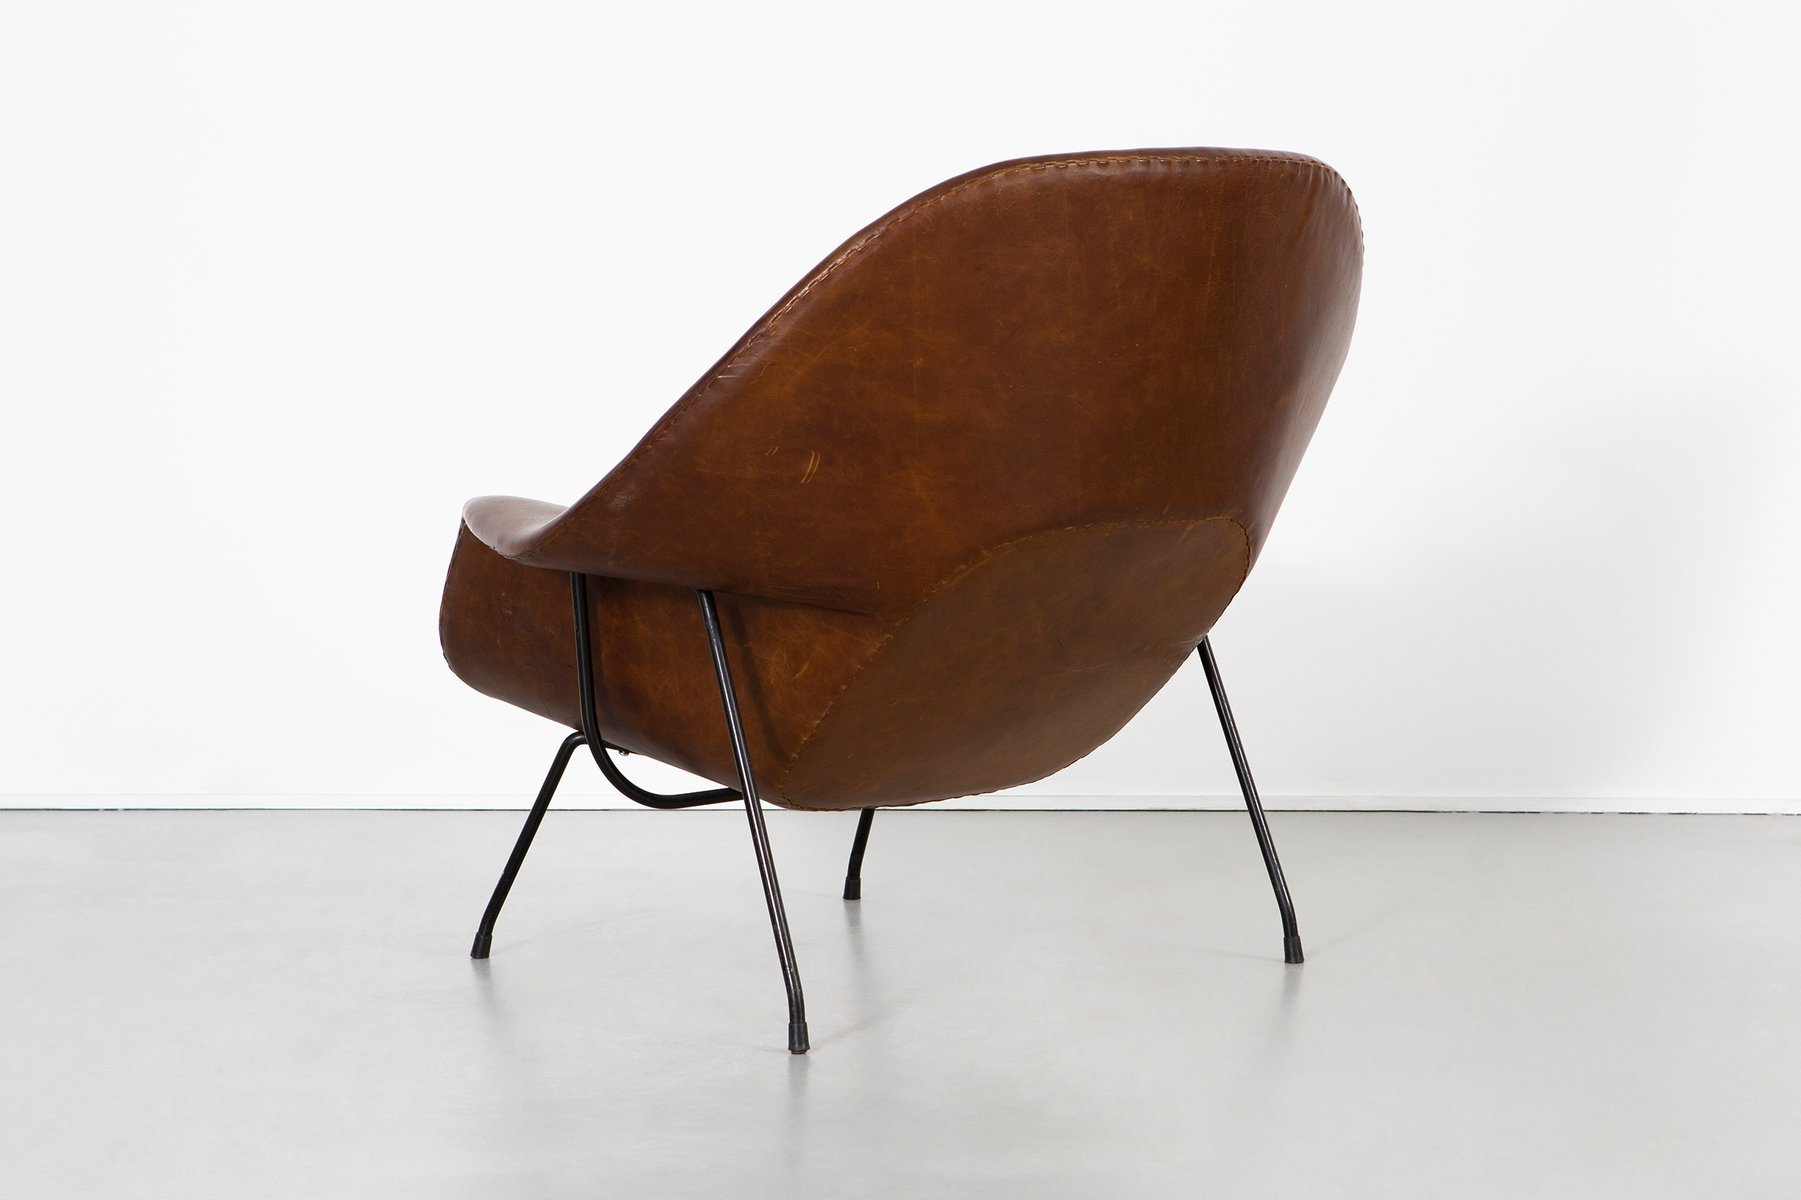 Womb Chair U0026 Ottoman By Eero Saarinen For Knoll Inc, 1960s